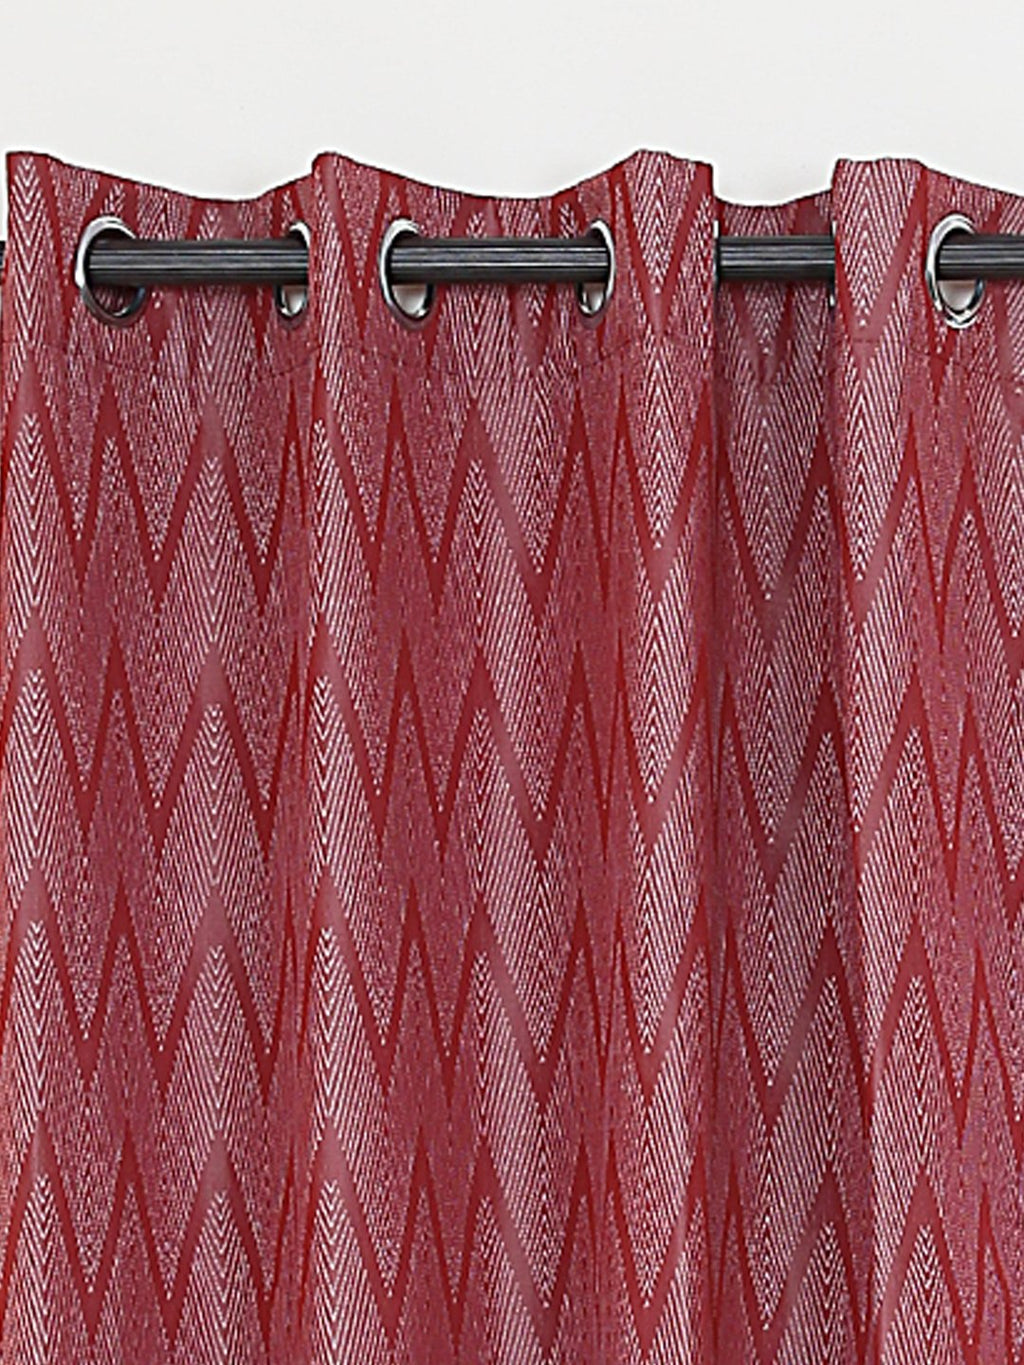 RANGRAGE 1 Piece Eyelet Polyester Window Curtain, 5ft, Maroon & White